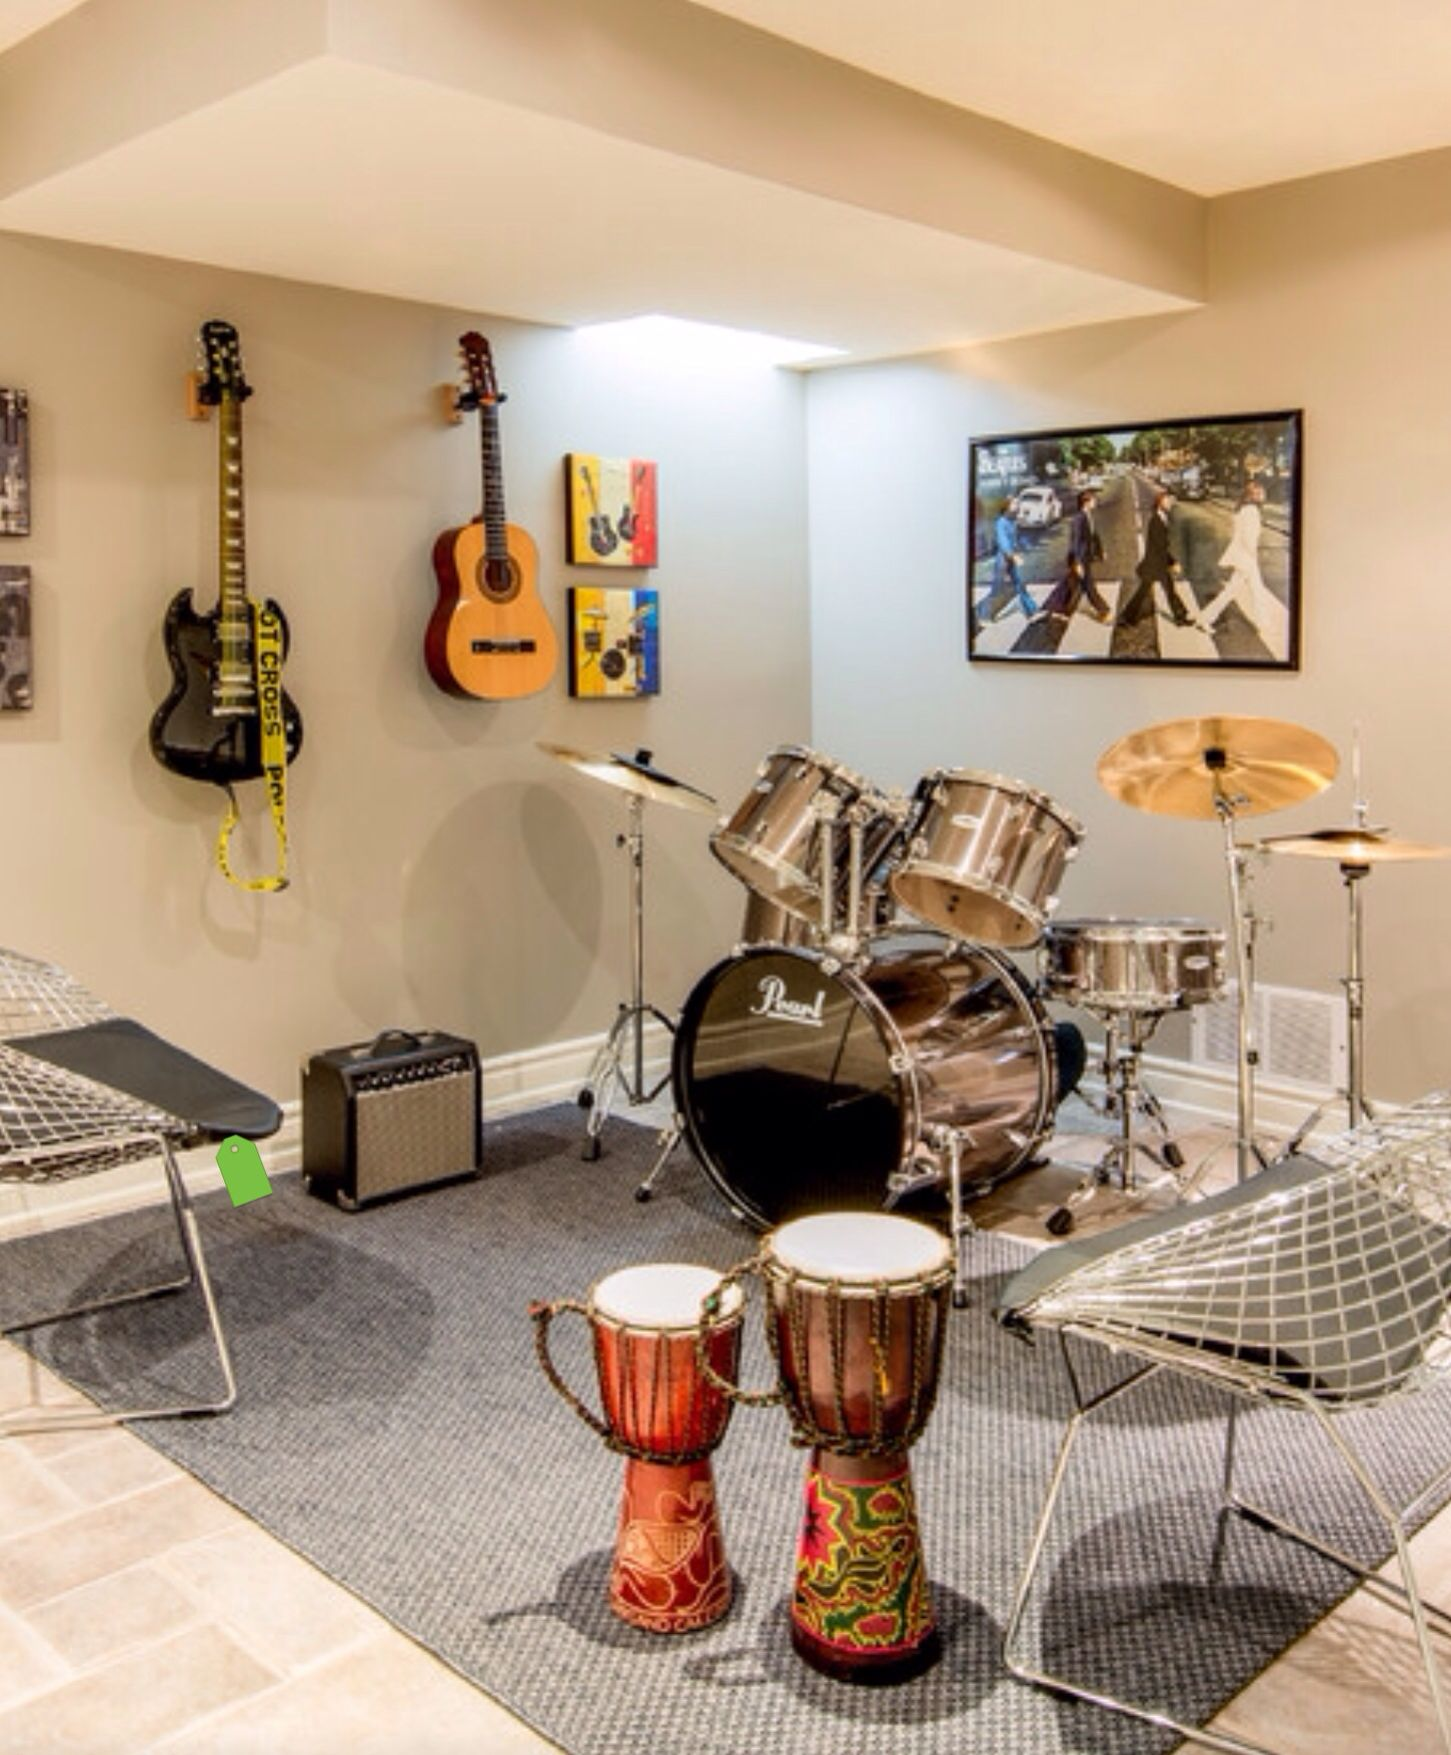 Music Room A Must Have For Those Who Dance (Like